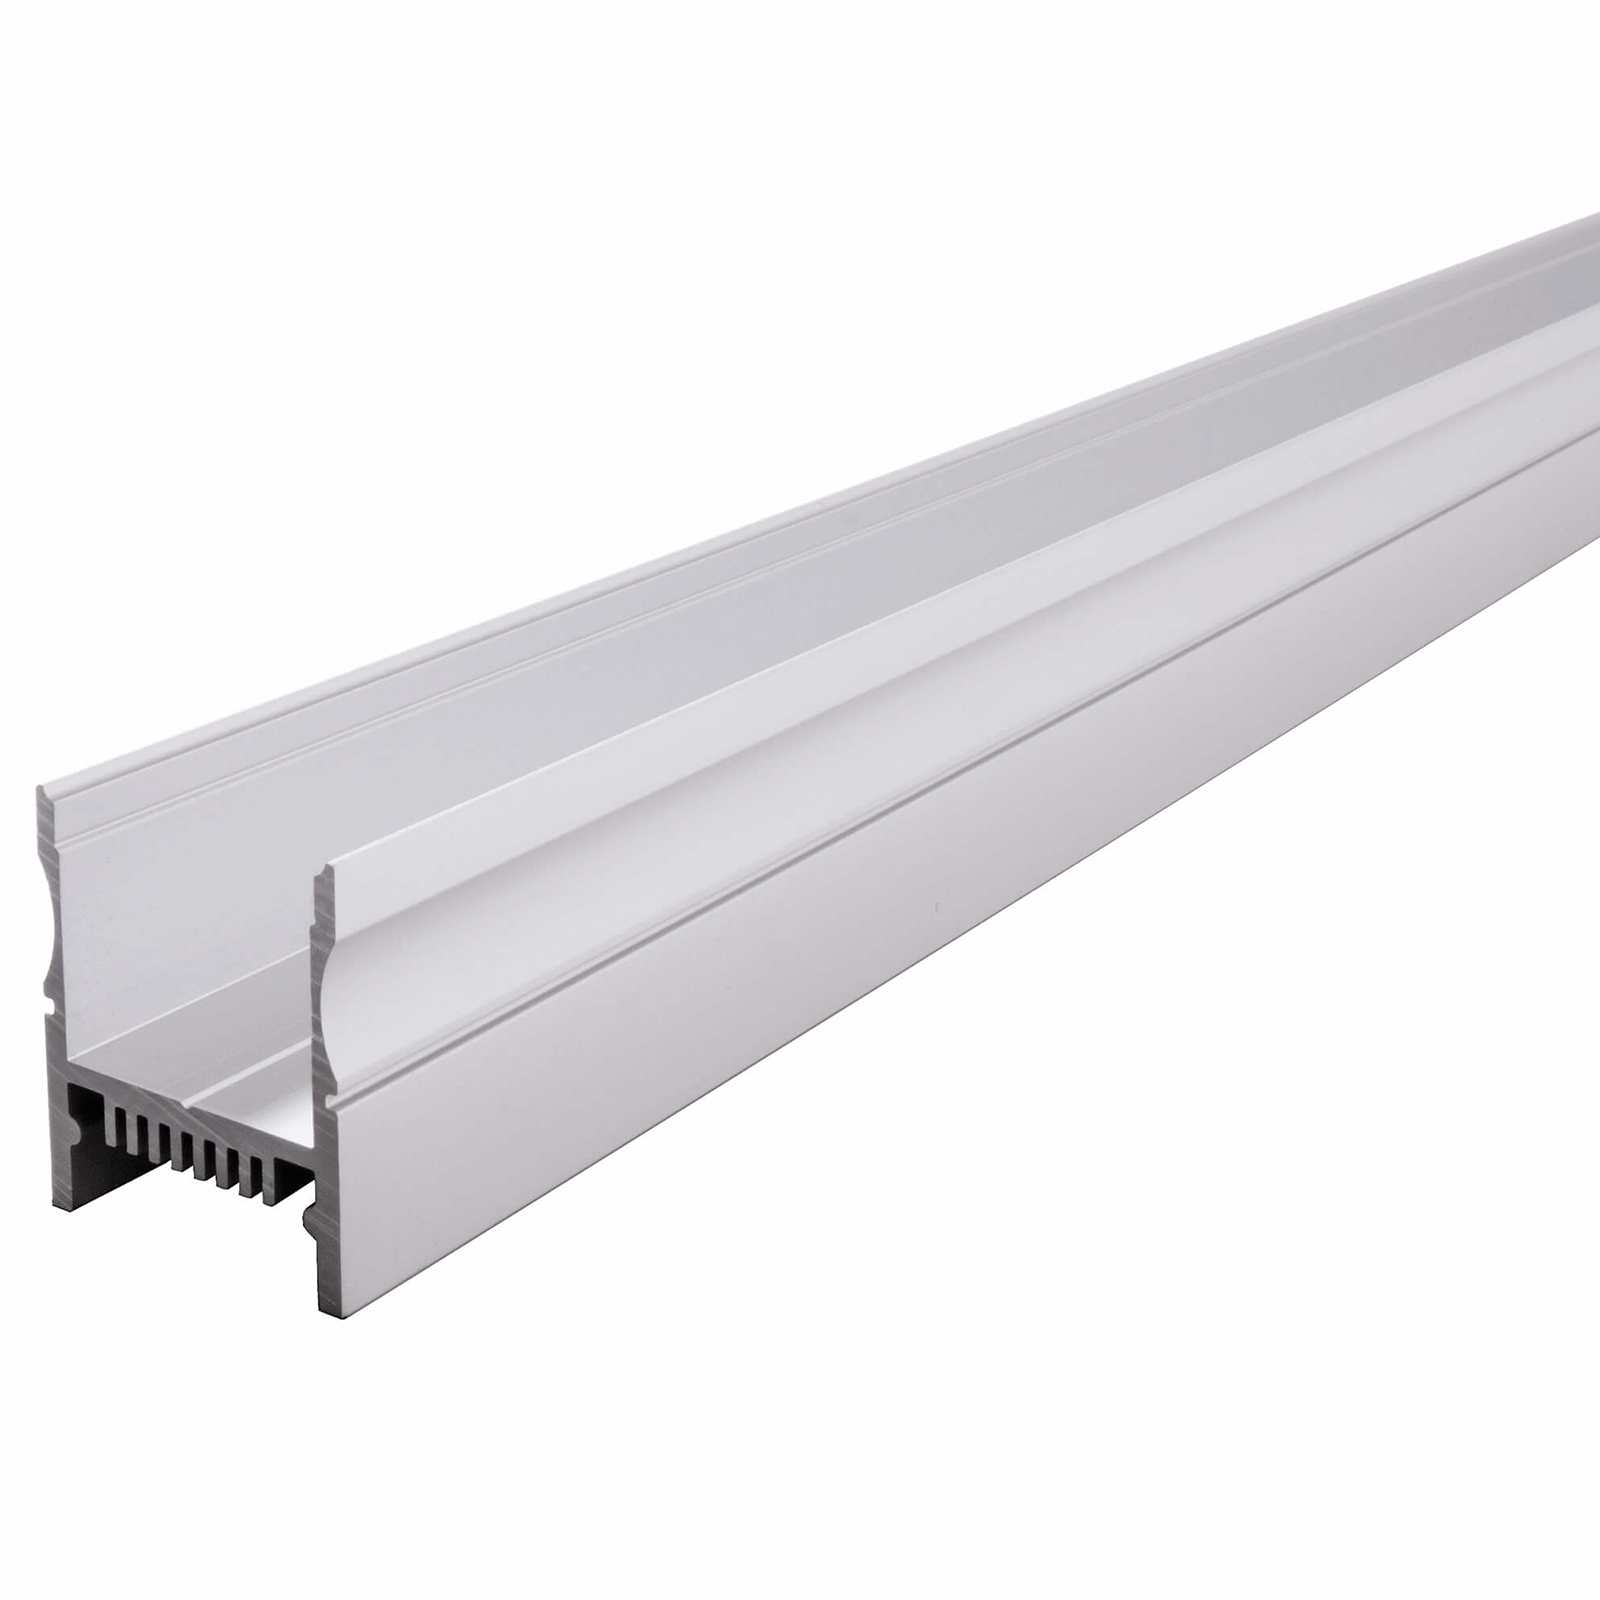 Aluminium profile ceiling profile linear slide for led strips fixing to the ceiling wall 1 2 m